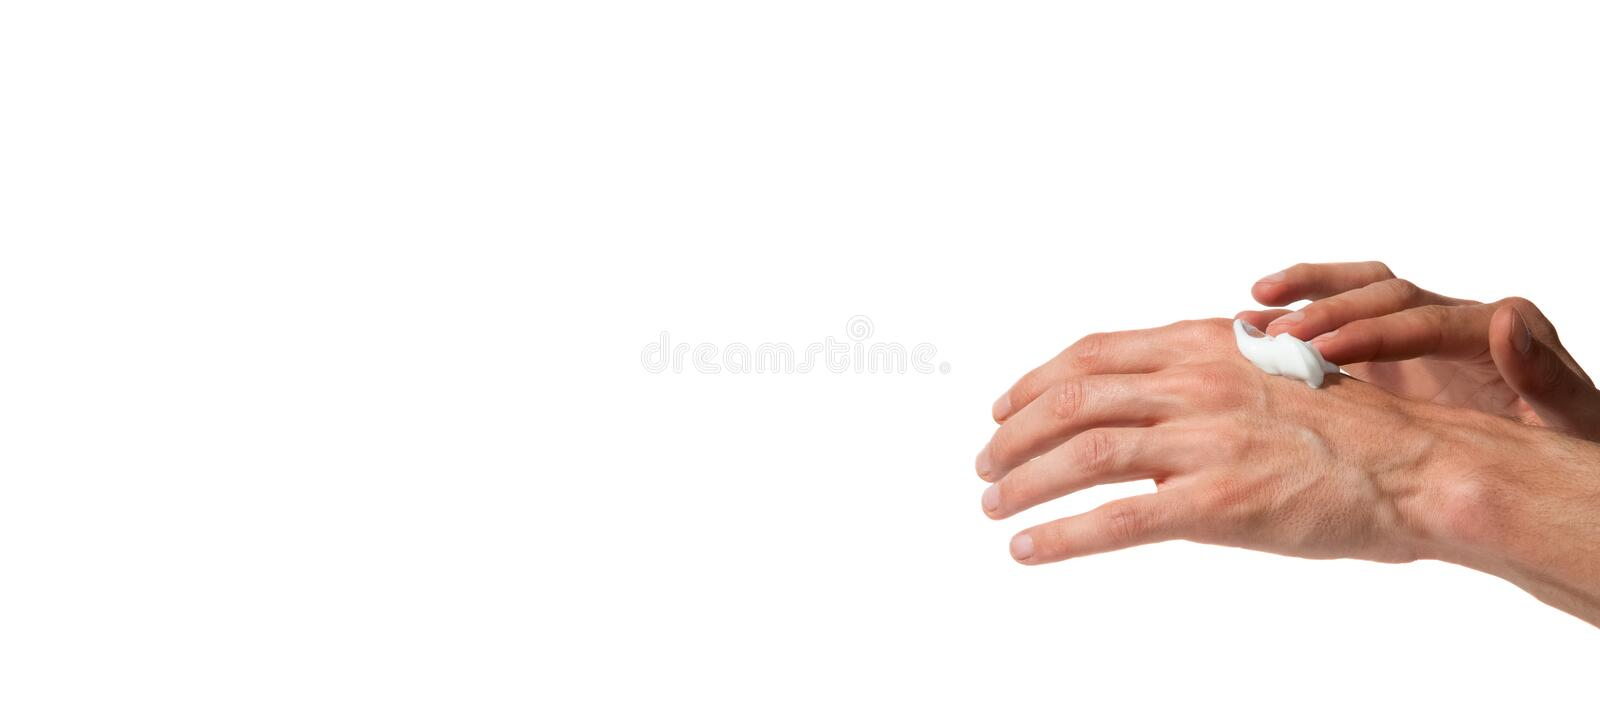 Male working hands put on a moisturize cream for soft skin isolated on a white background, beauty concept royalty free stock photography